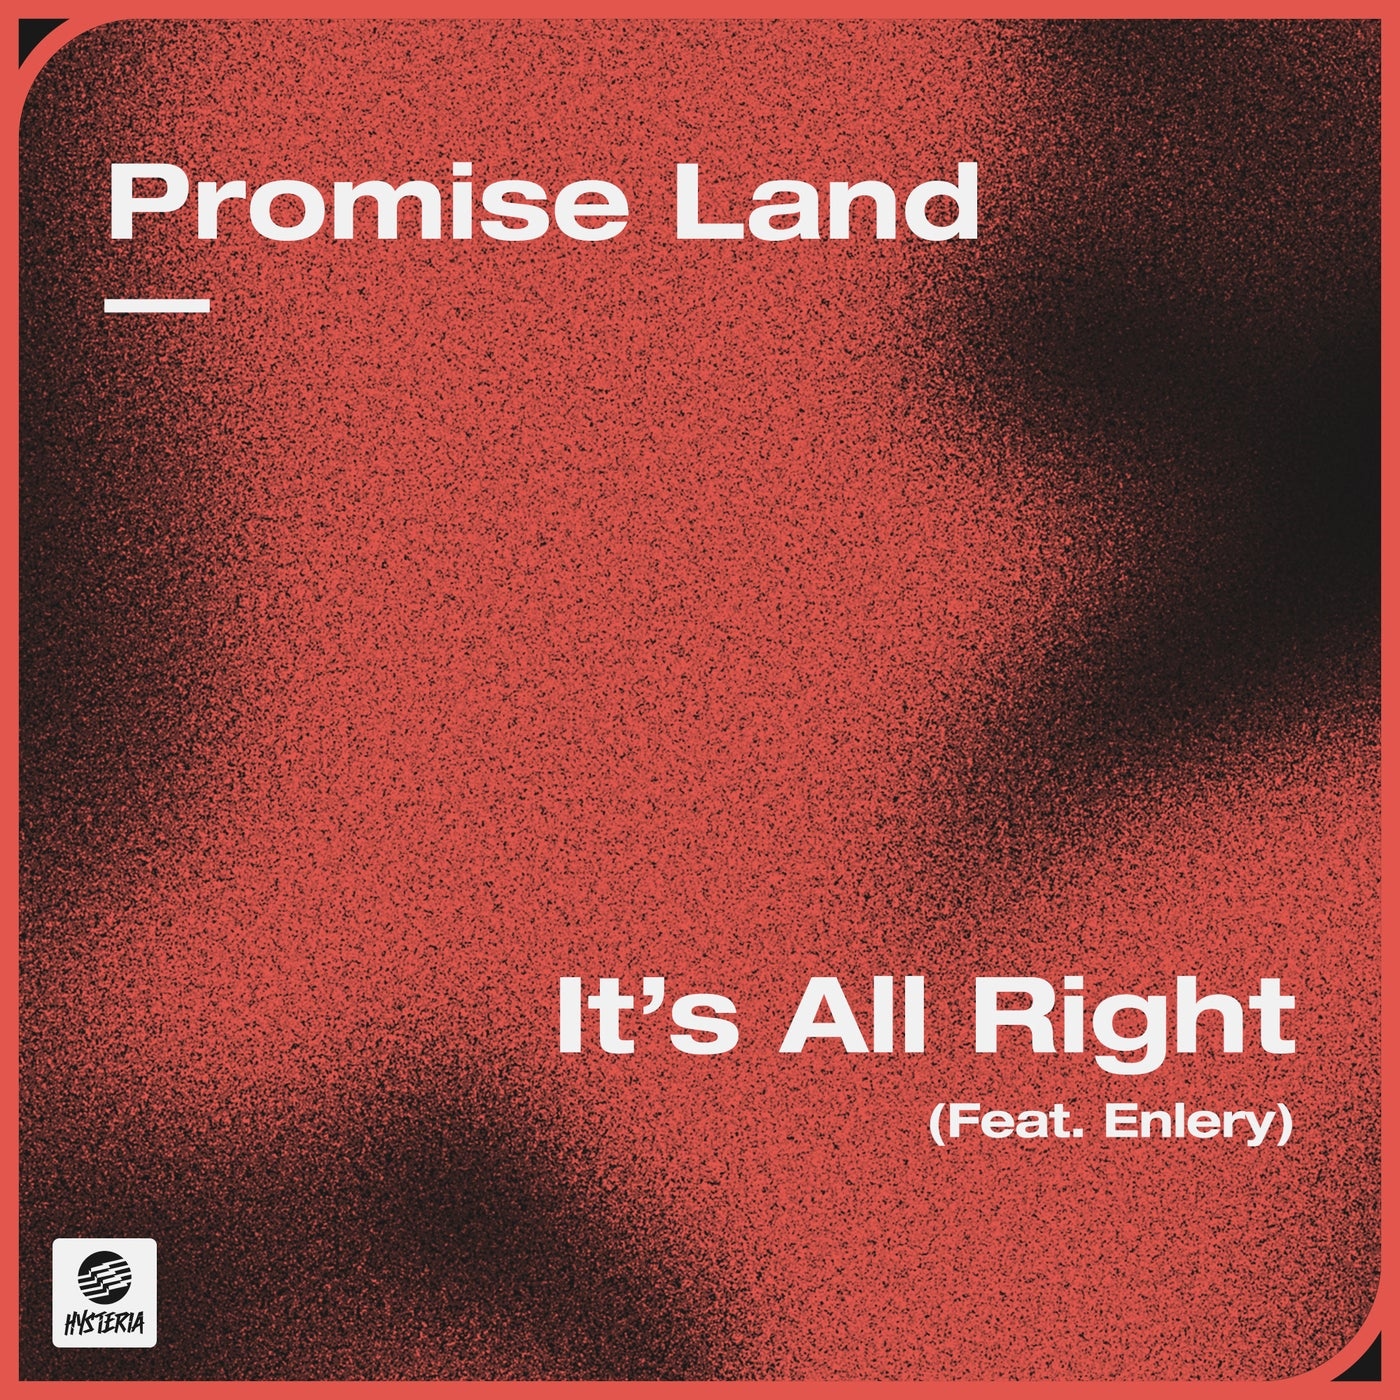 It's All Right (feat. Enlery) (Extended Mix)